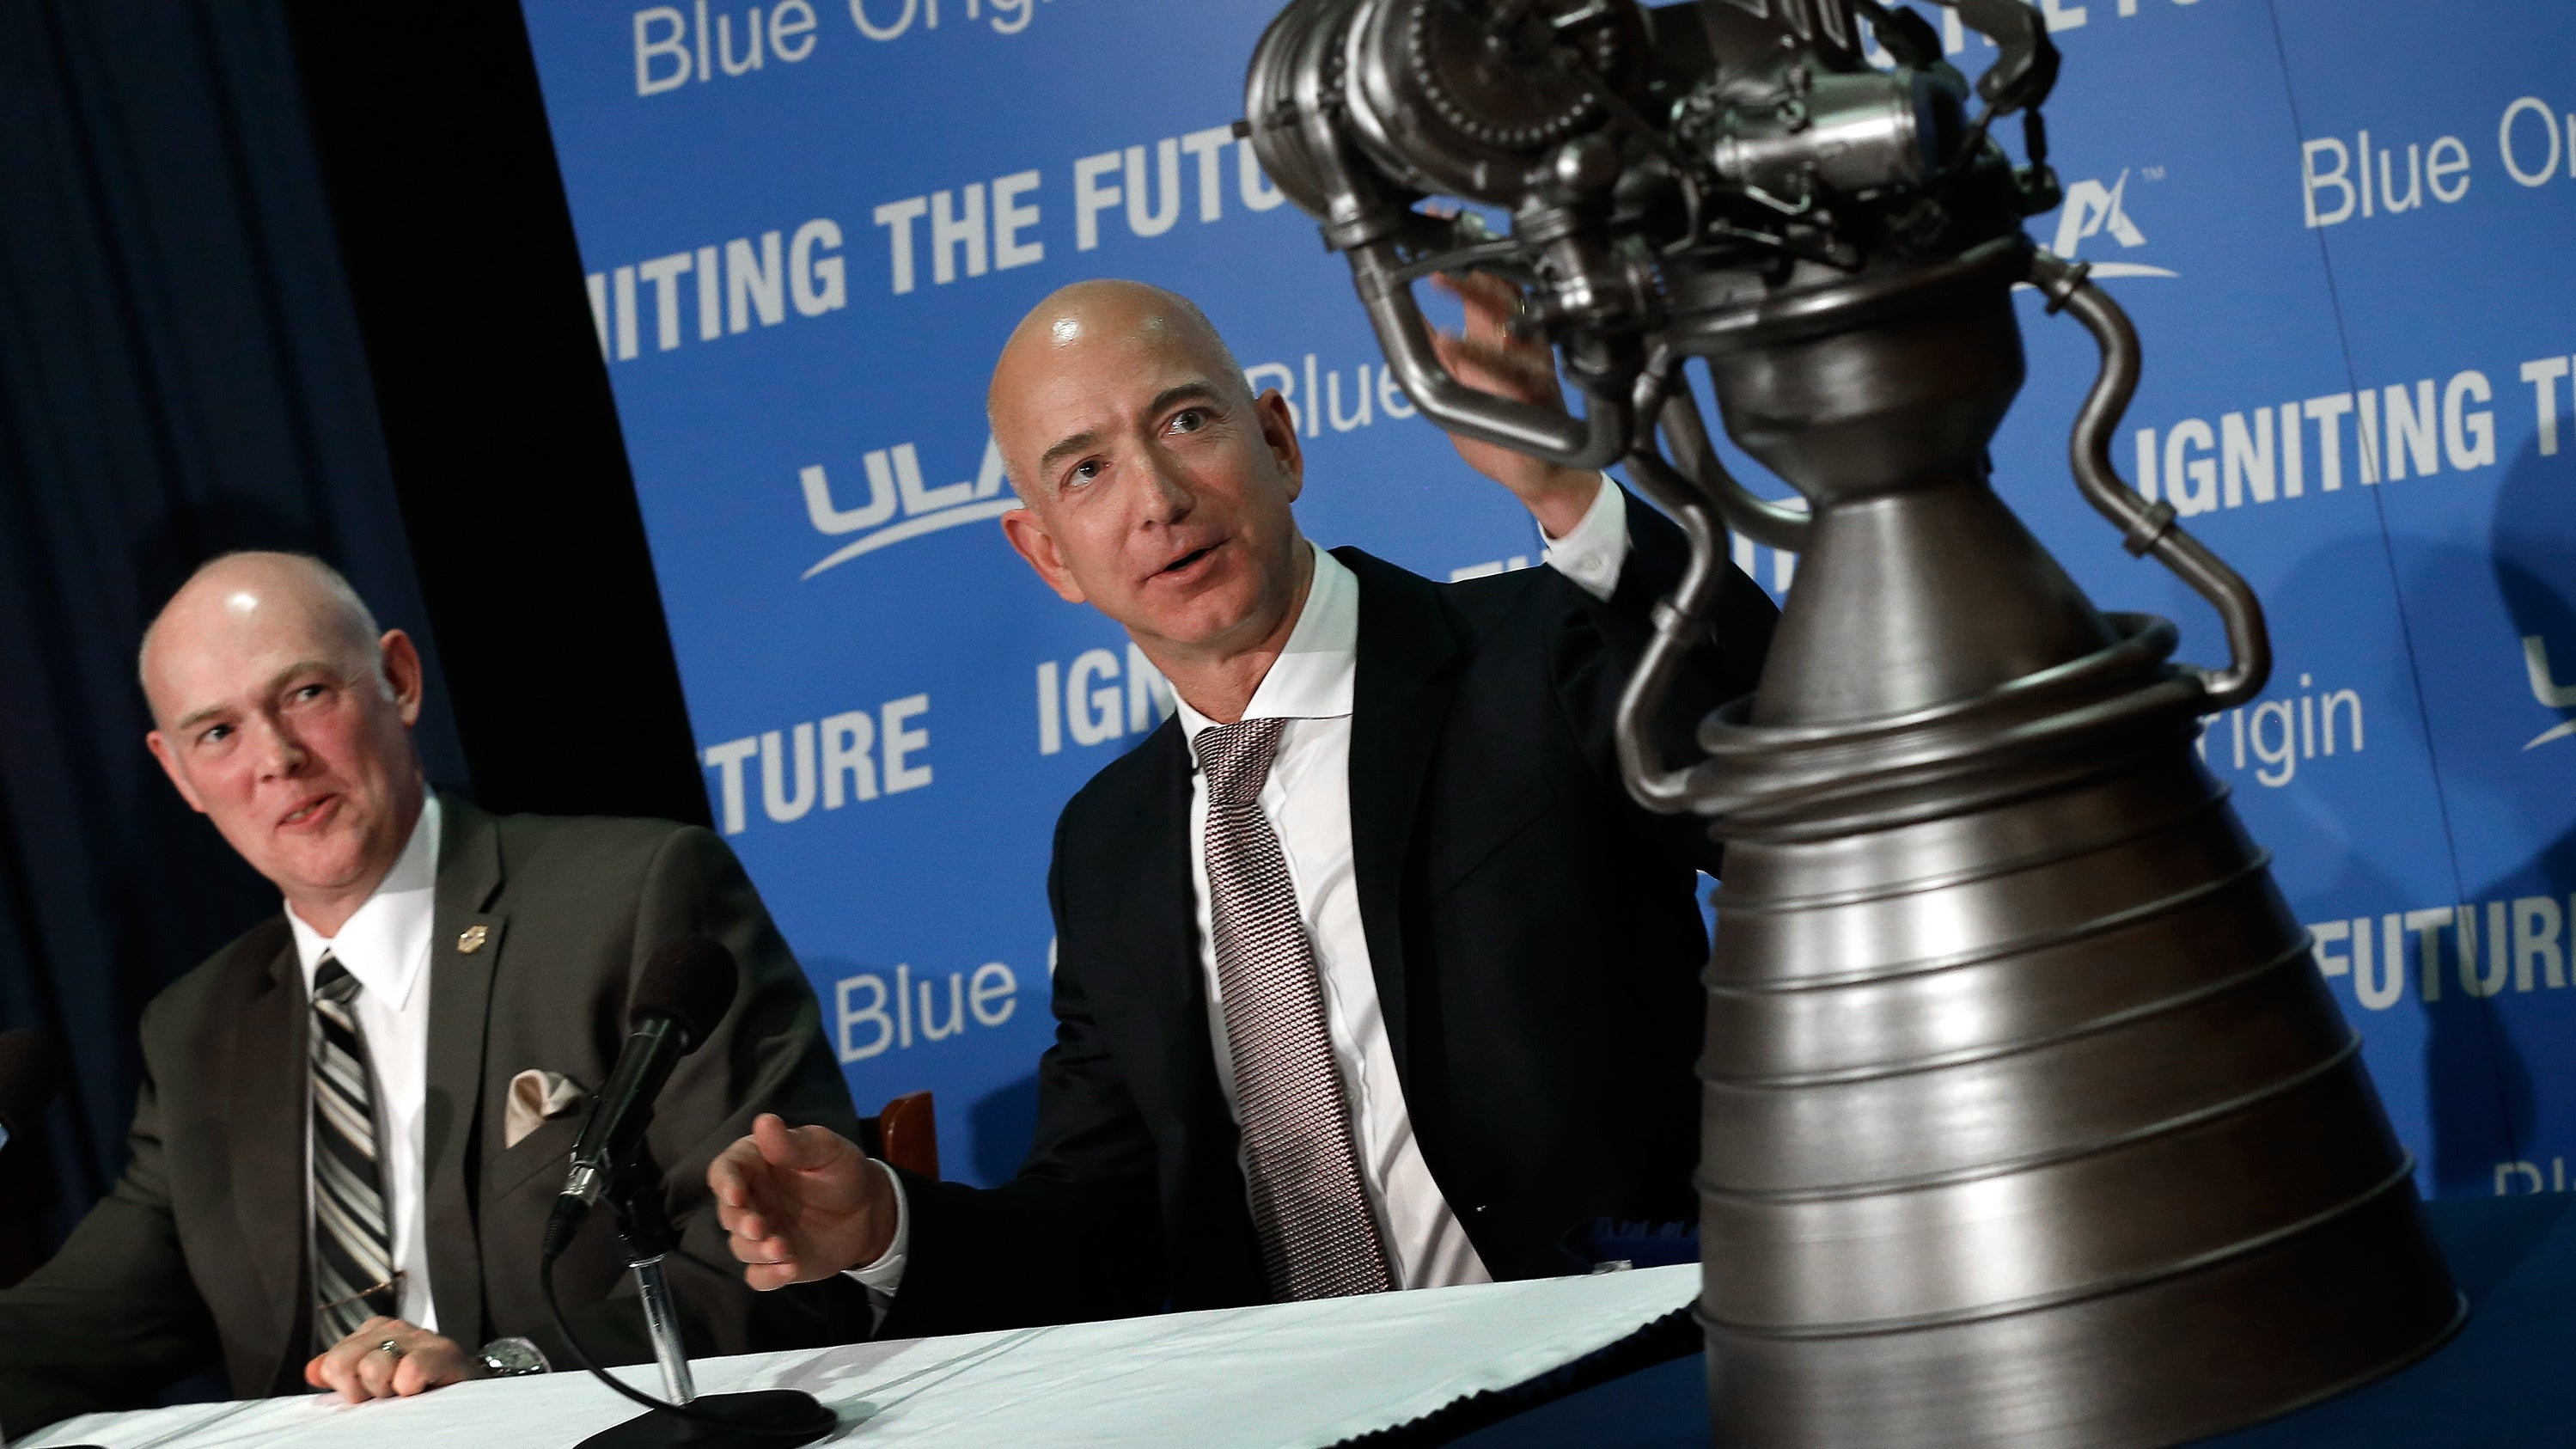 Jeff Bezos Expected To Charge At Least $270,000 For Space Rides In His Rich People Escape Pods